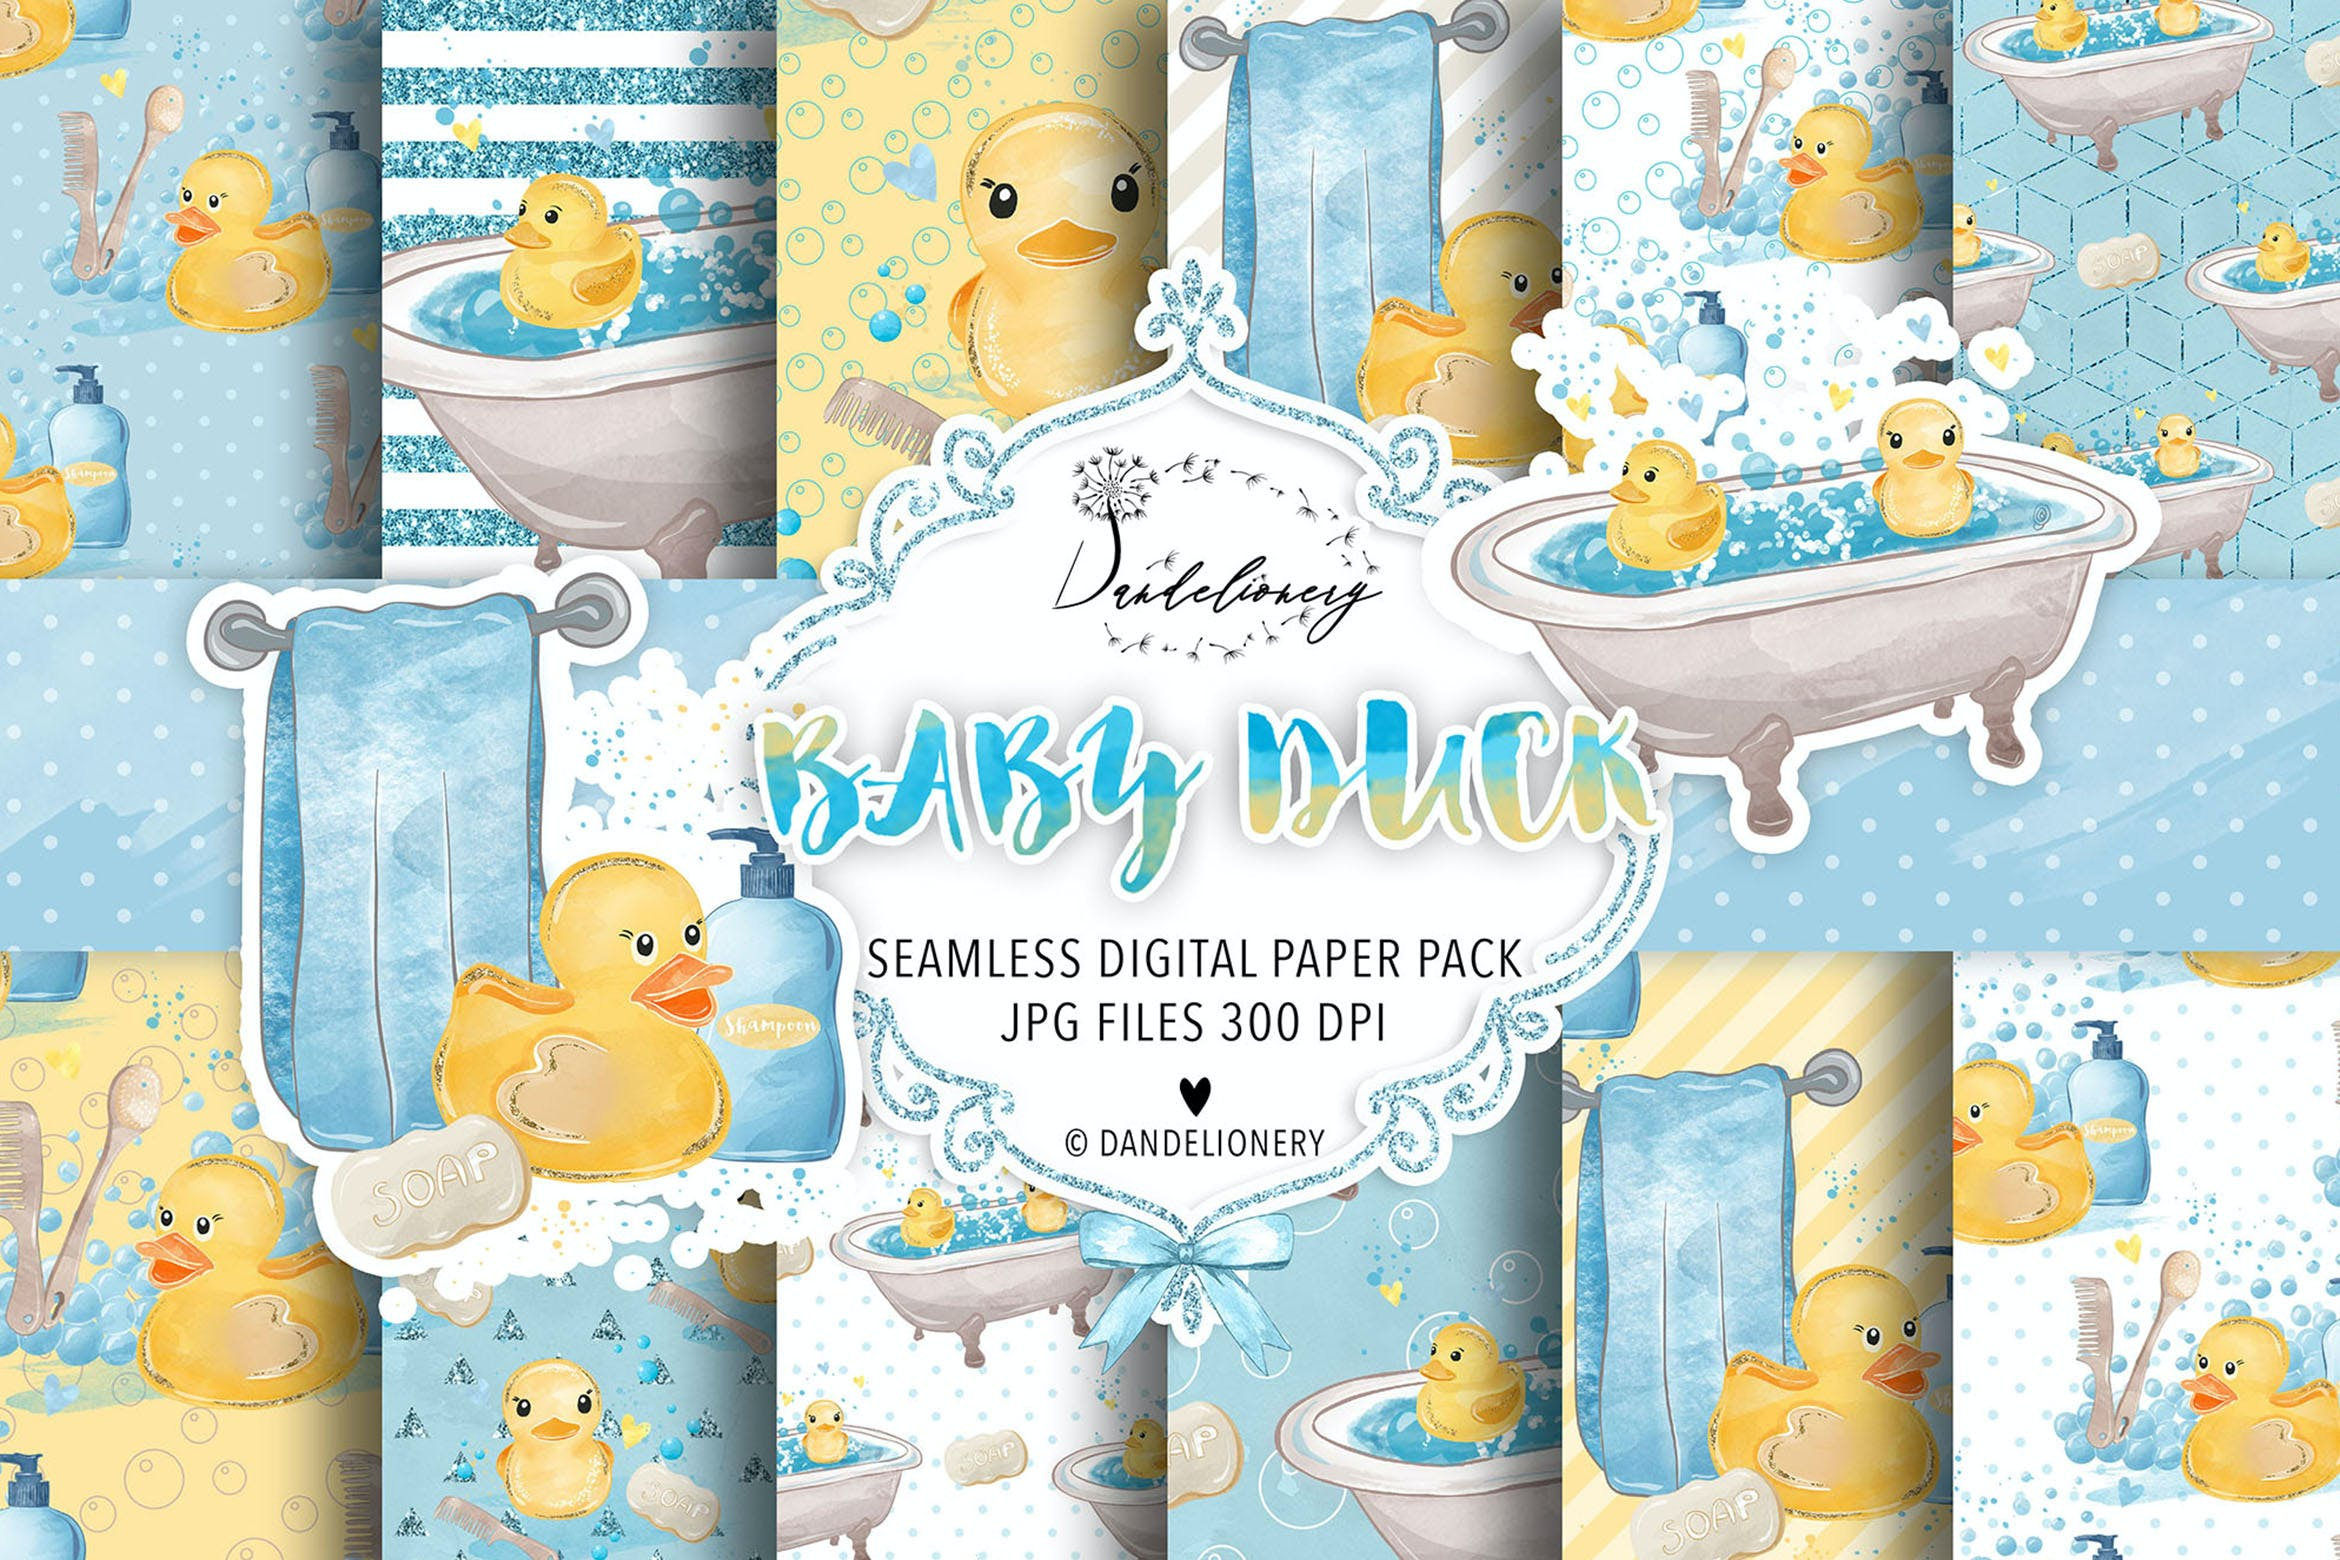 <span class='yzk_title_114047'>水彩小黄鸭宝宝数码纸图案素材包 Watercolor Baby Duck digital paper pack</span>